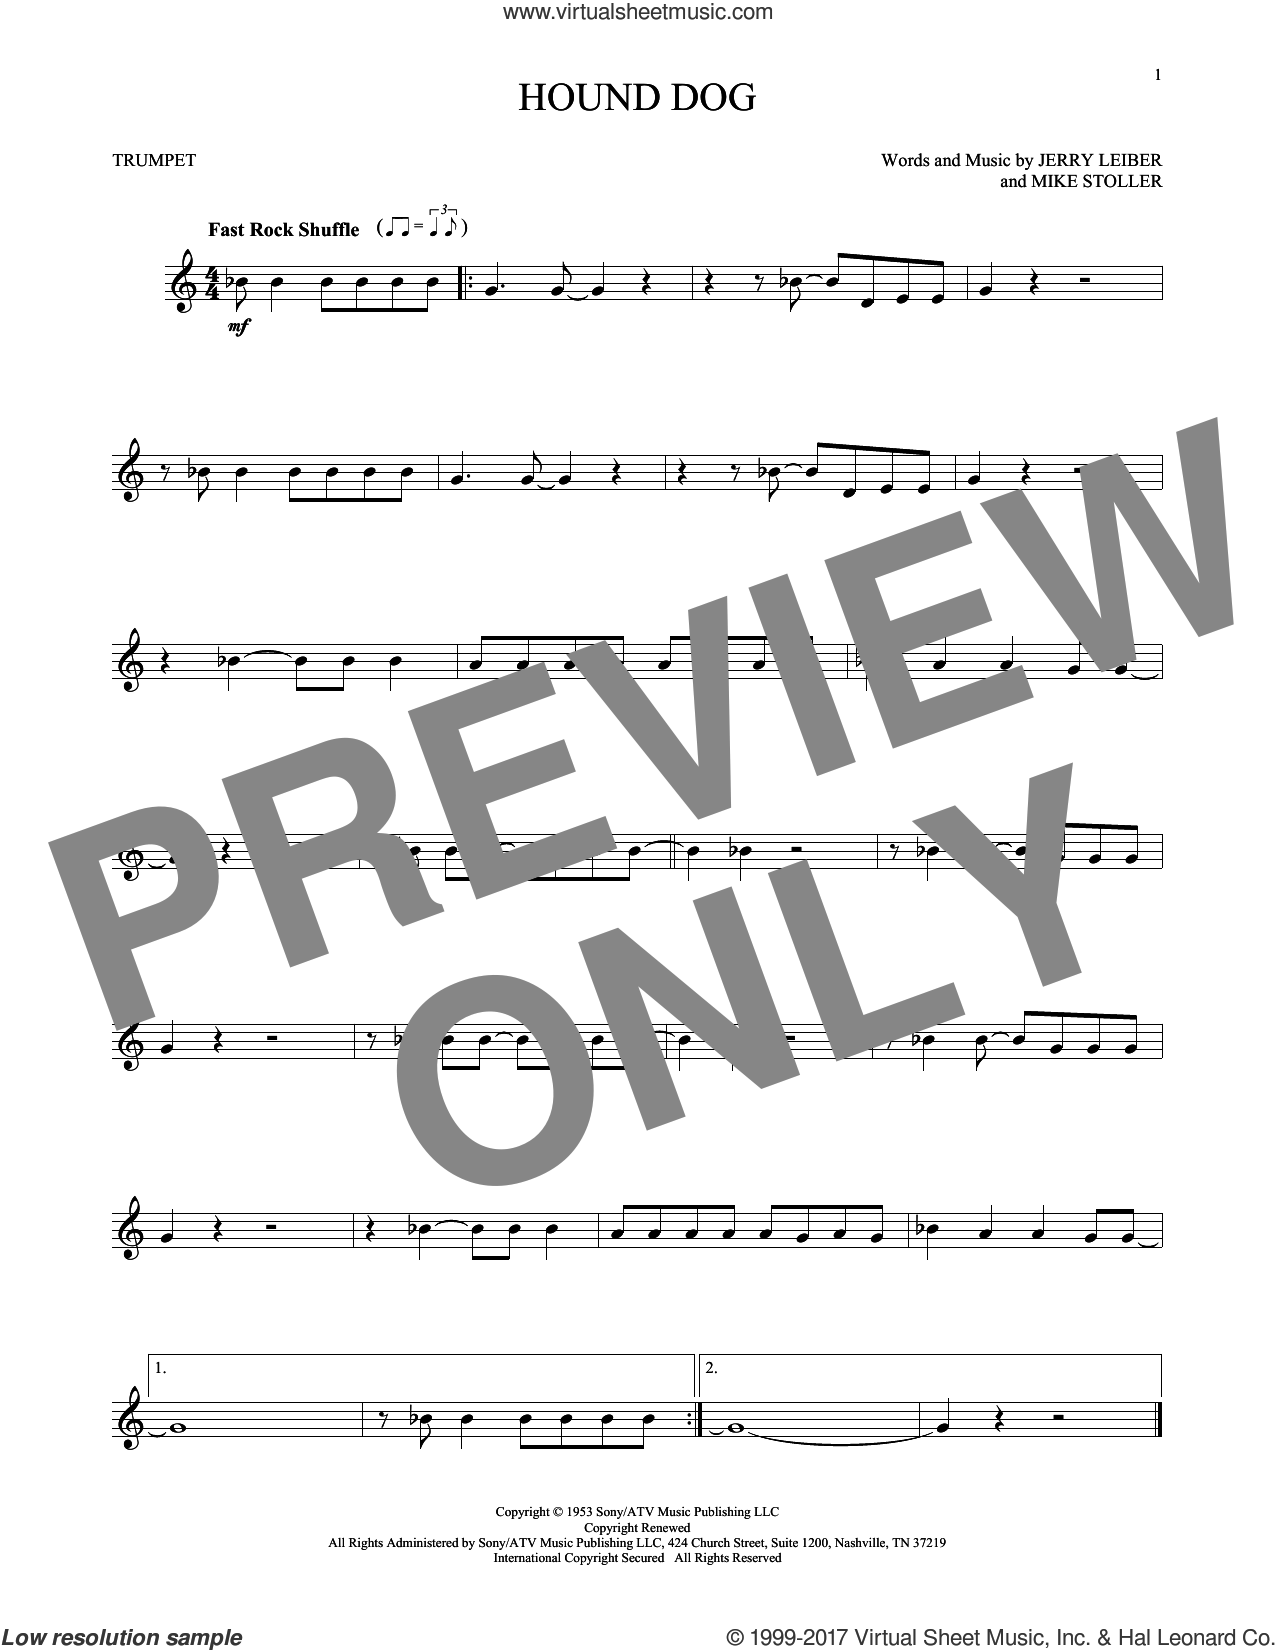 Hound Dog sheet music for trumpet solo by Elvis Presley, Jerry Leiber and Mike Stoller, intermediate skill level